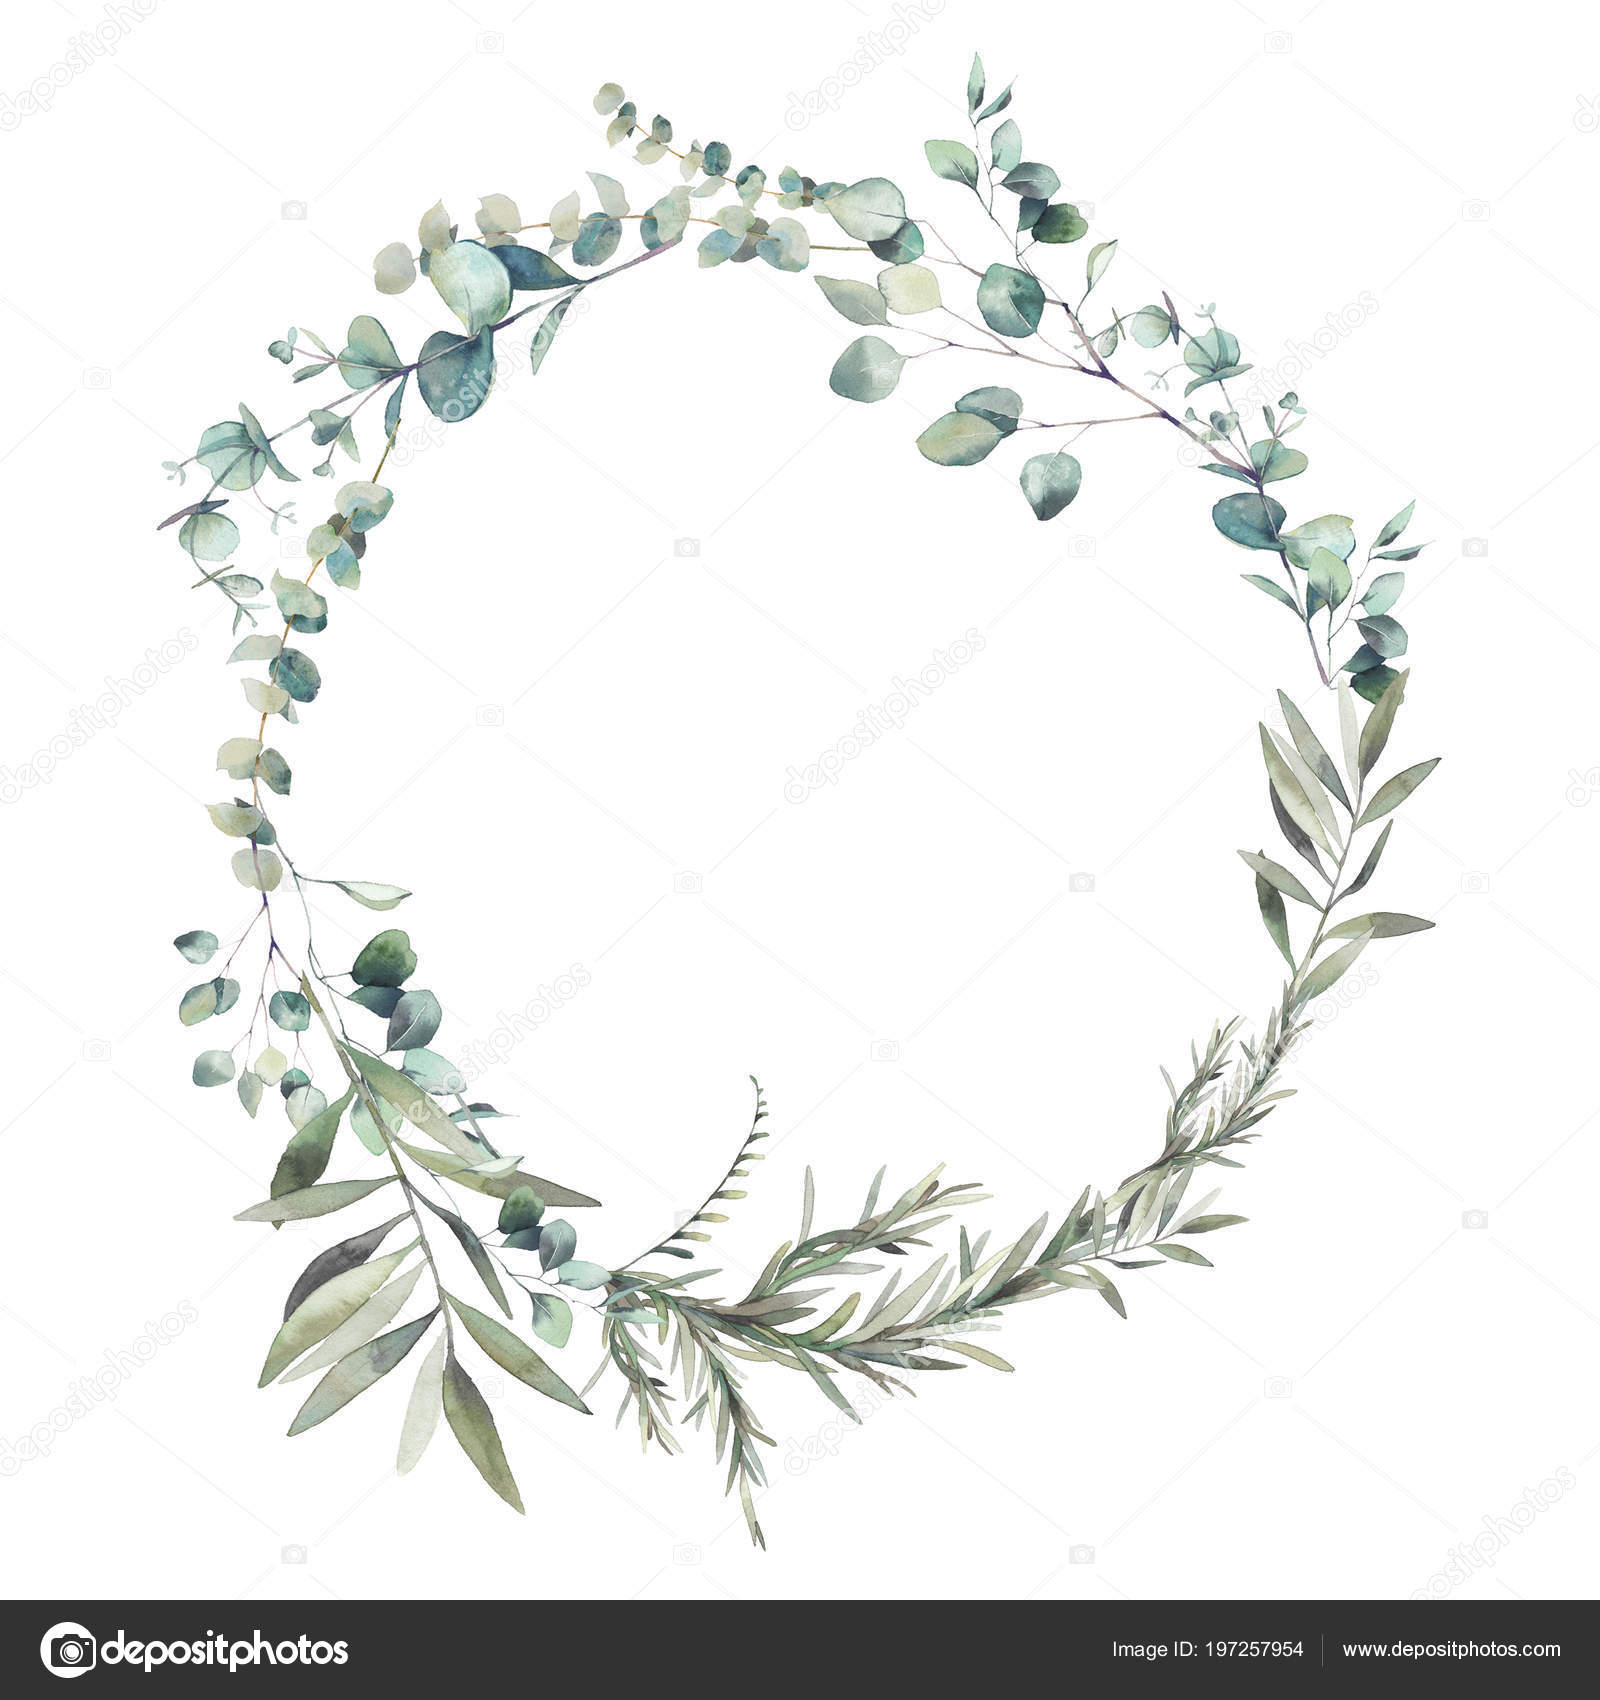 Watercolor Greenery Combination Eucalyptus Branches And Olive Tree Leaves Wreath Hand Painted Floral Clip Art Round Frame Isolated On White Background